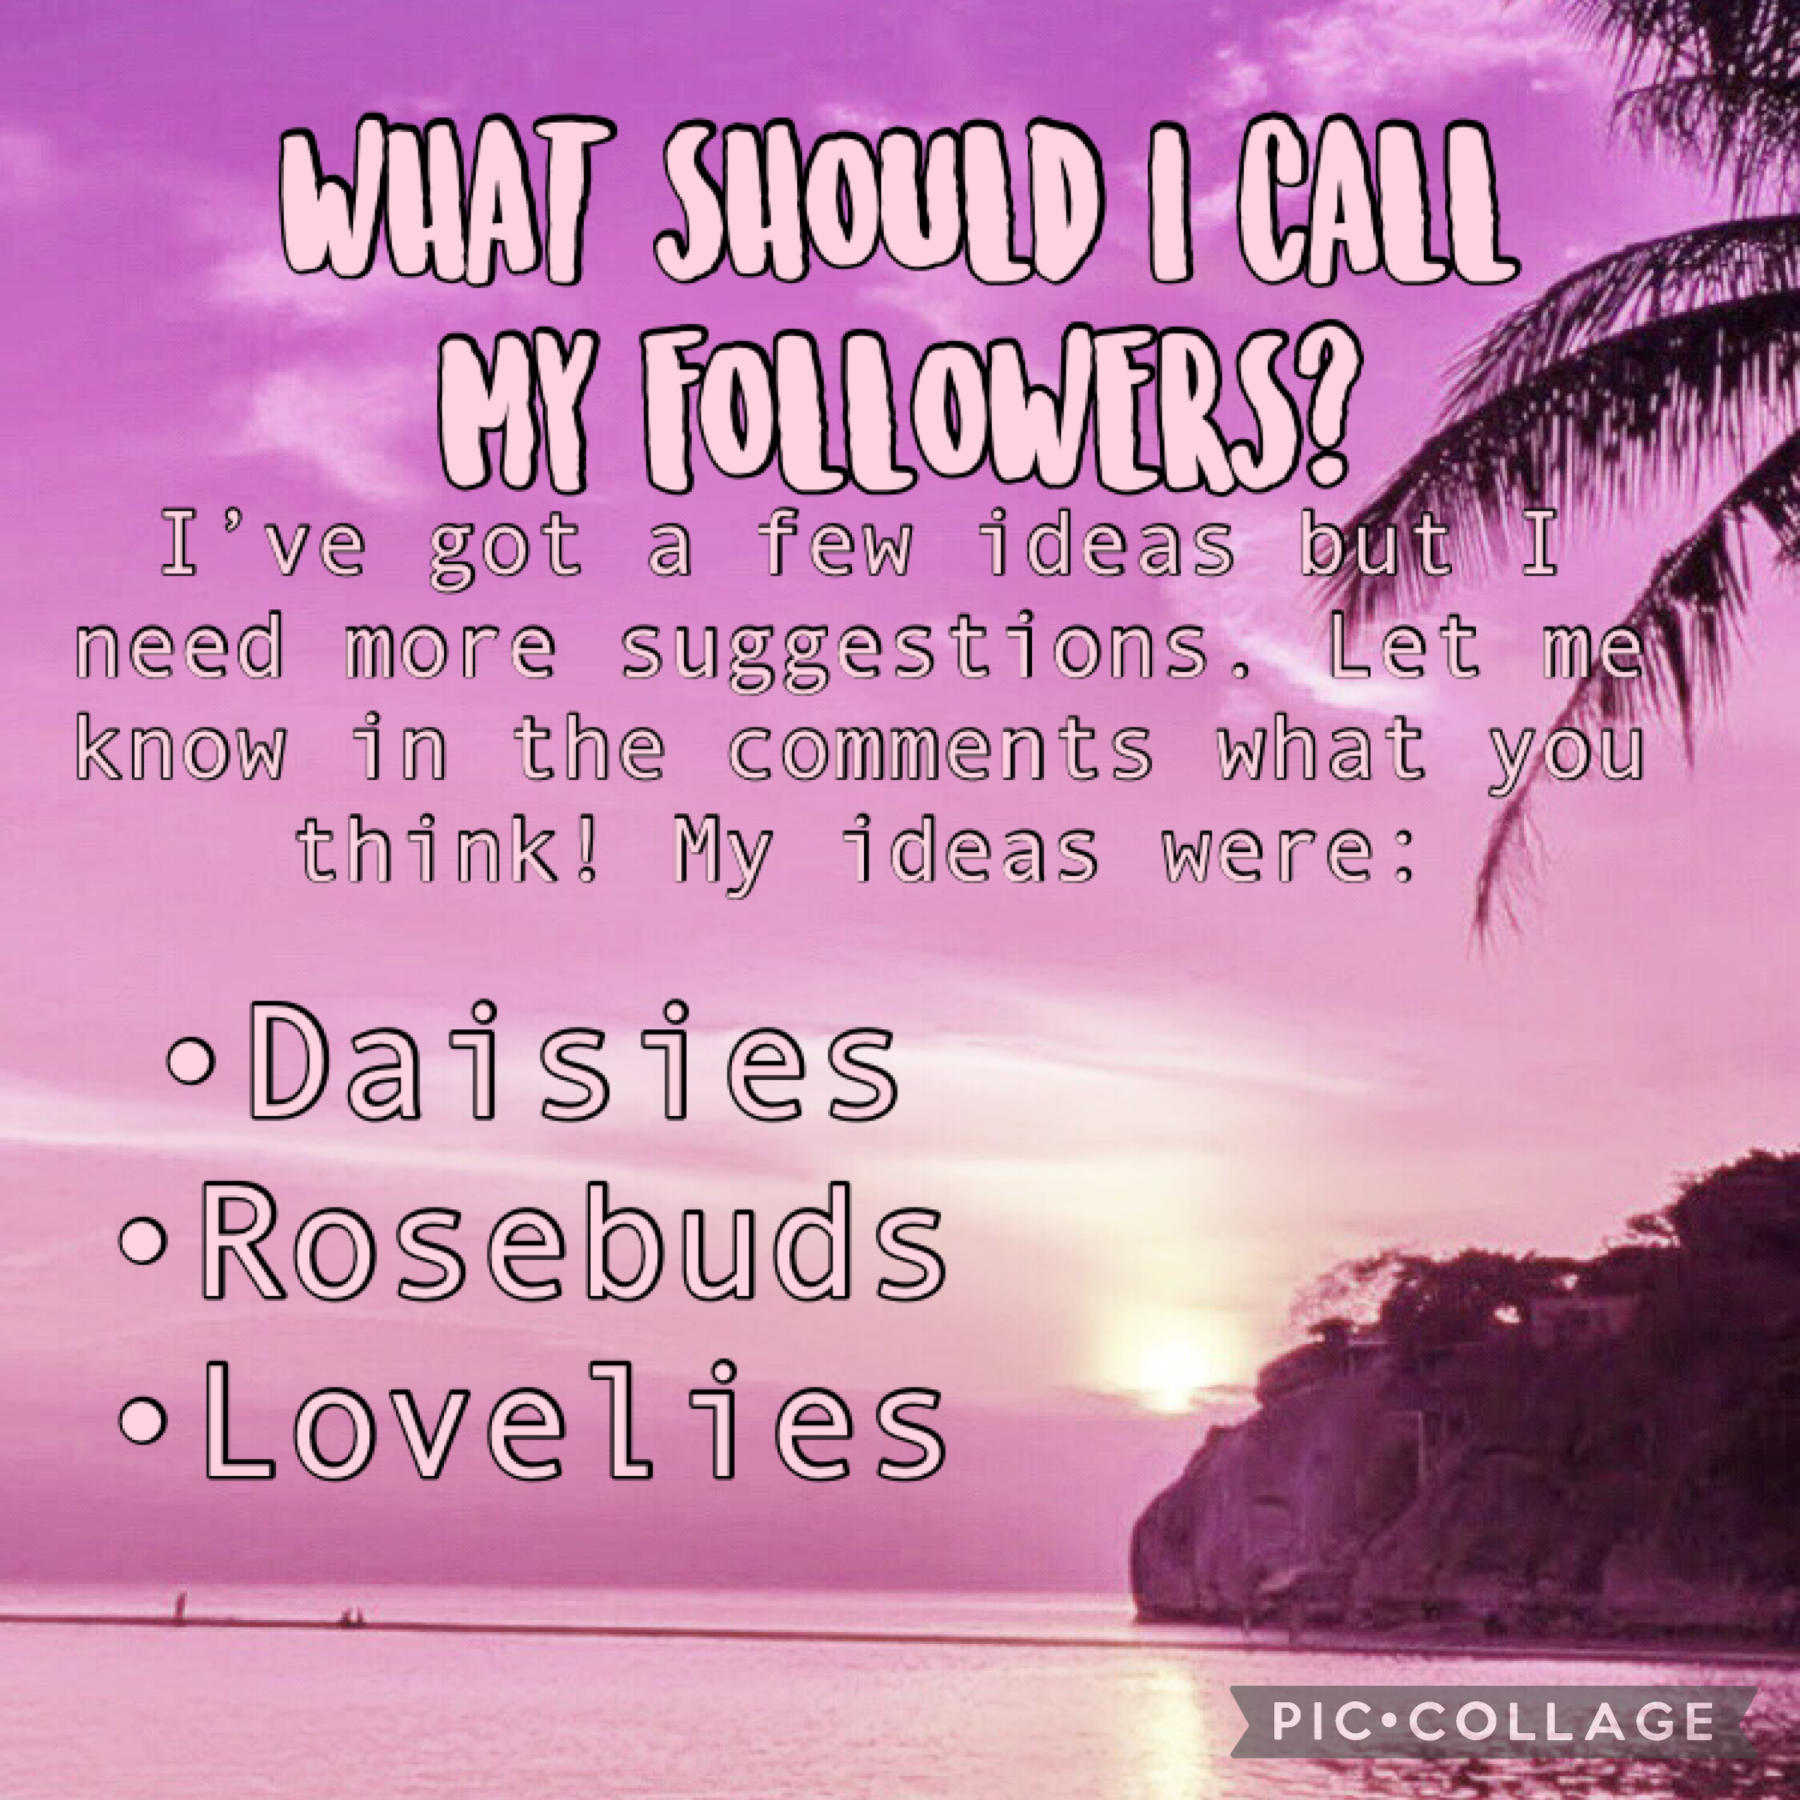 🌹2.18.21🌹  I know all of those ideas aren't great, so I need your input!